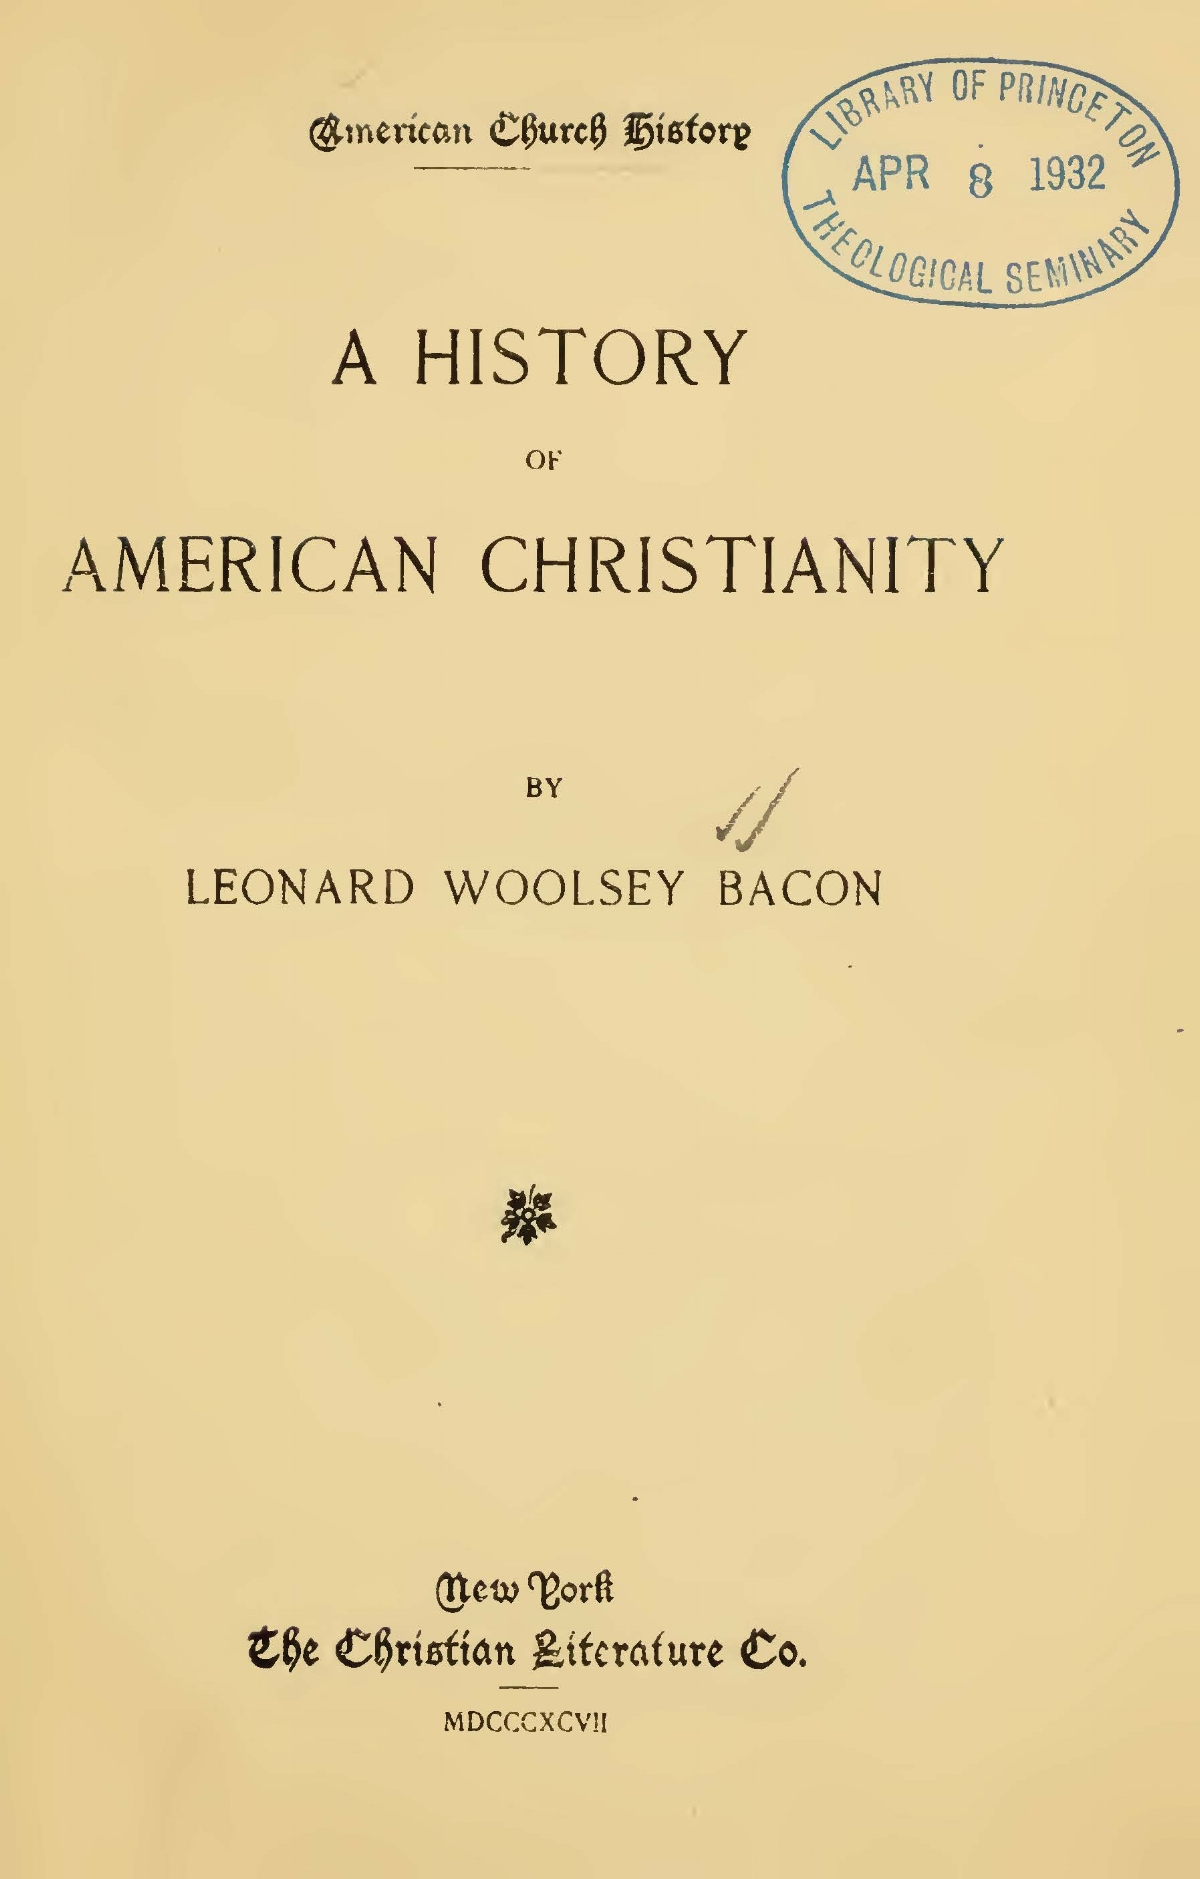 Bacon, Leonard Woolsey, A History of American Christianity Title Page.jpg